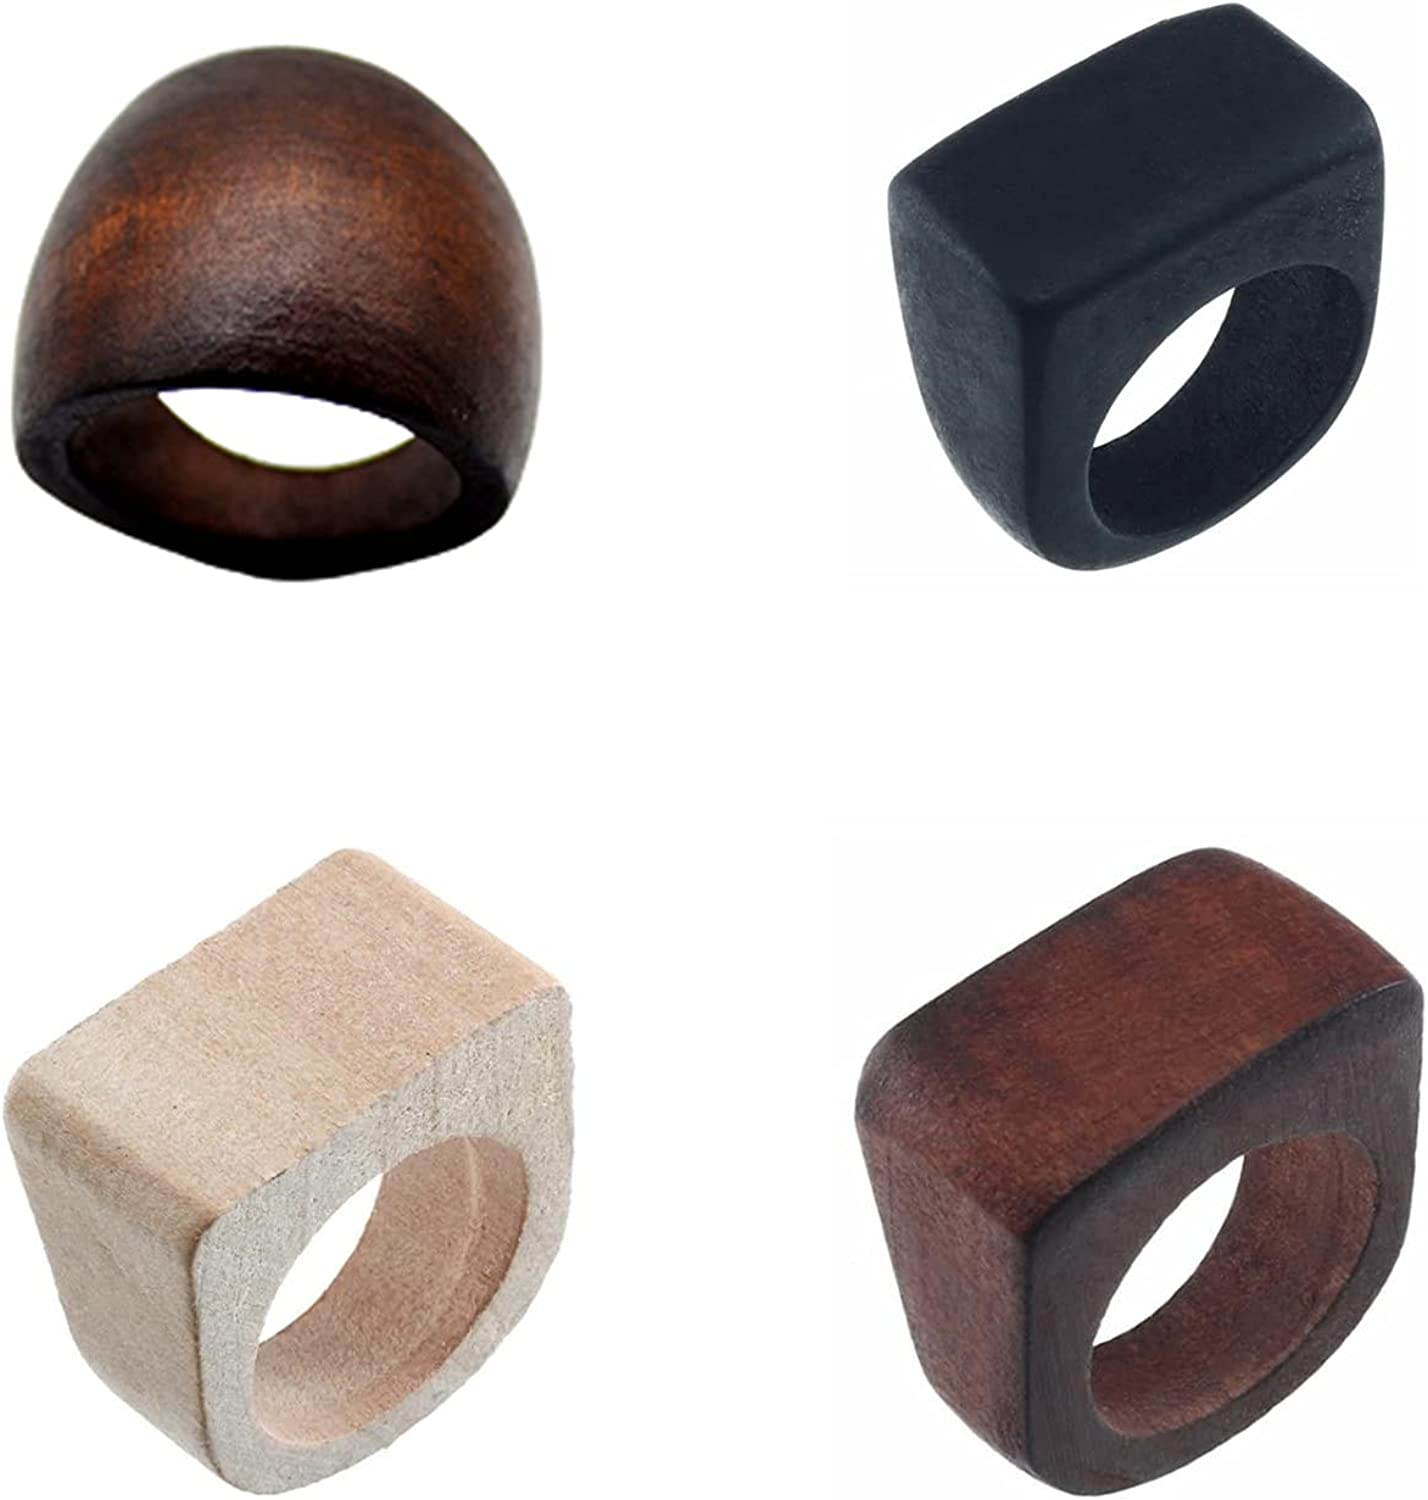 Original Natural Wood Rings Handmade Retro Geometric Round Statement Rings Vintage Bohemia Wooden African Ethnic Ring Jewelry for Women Girl